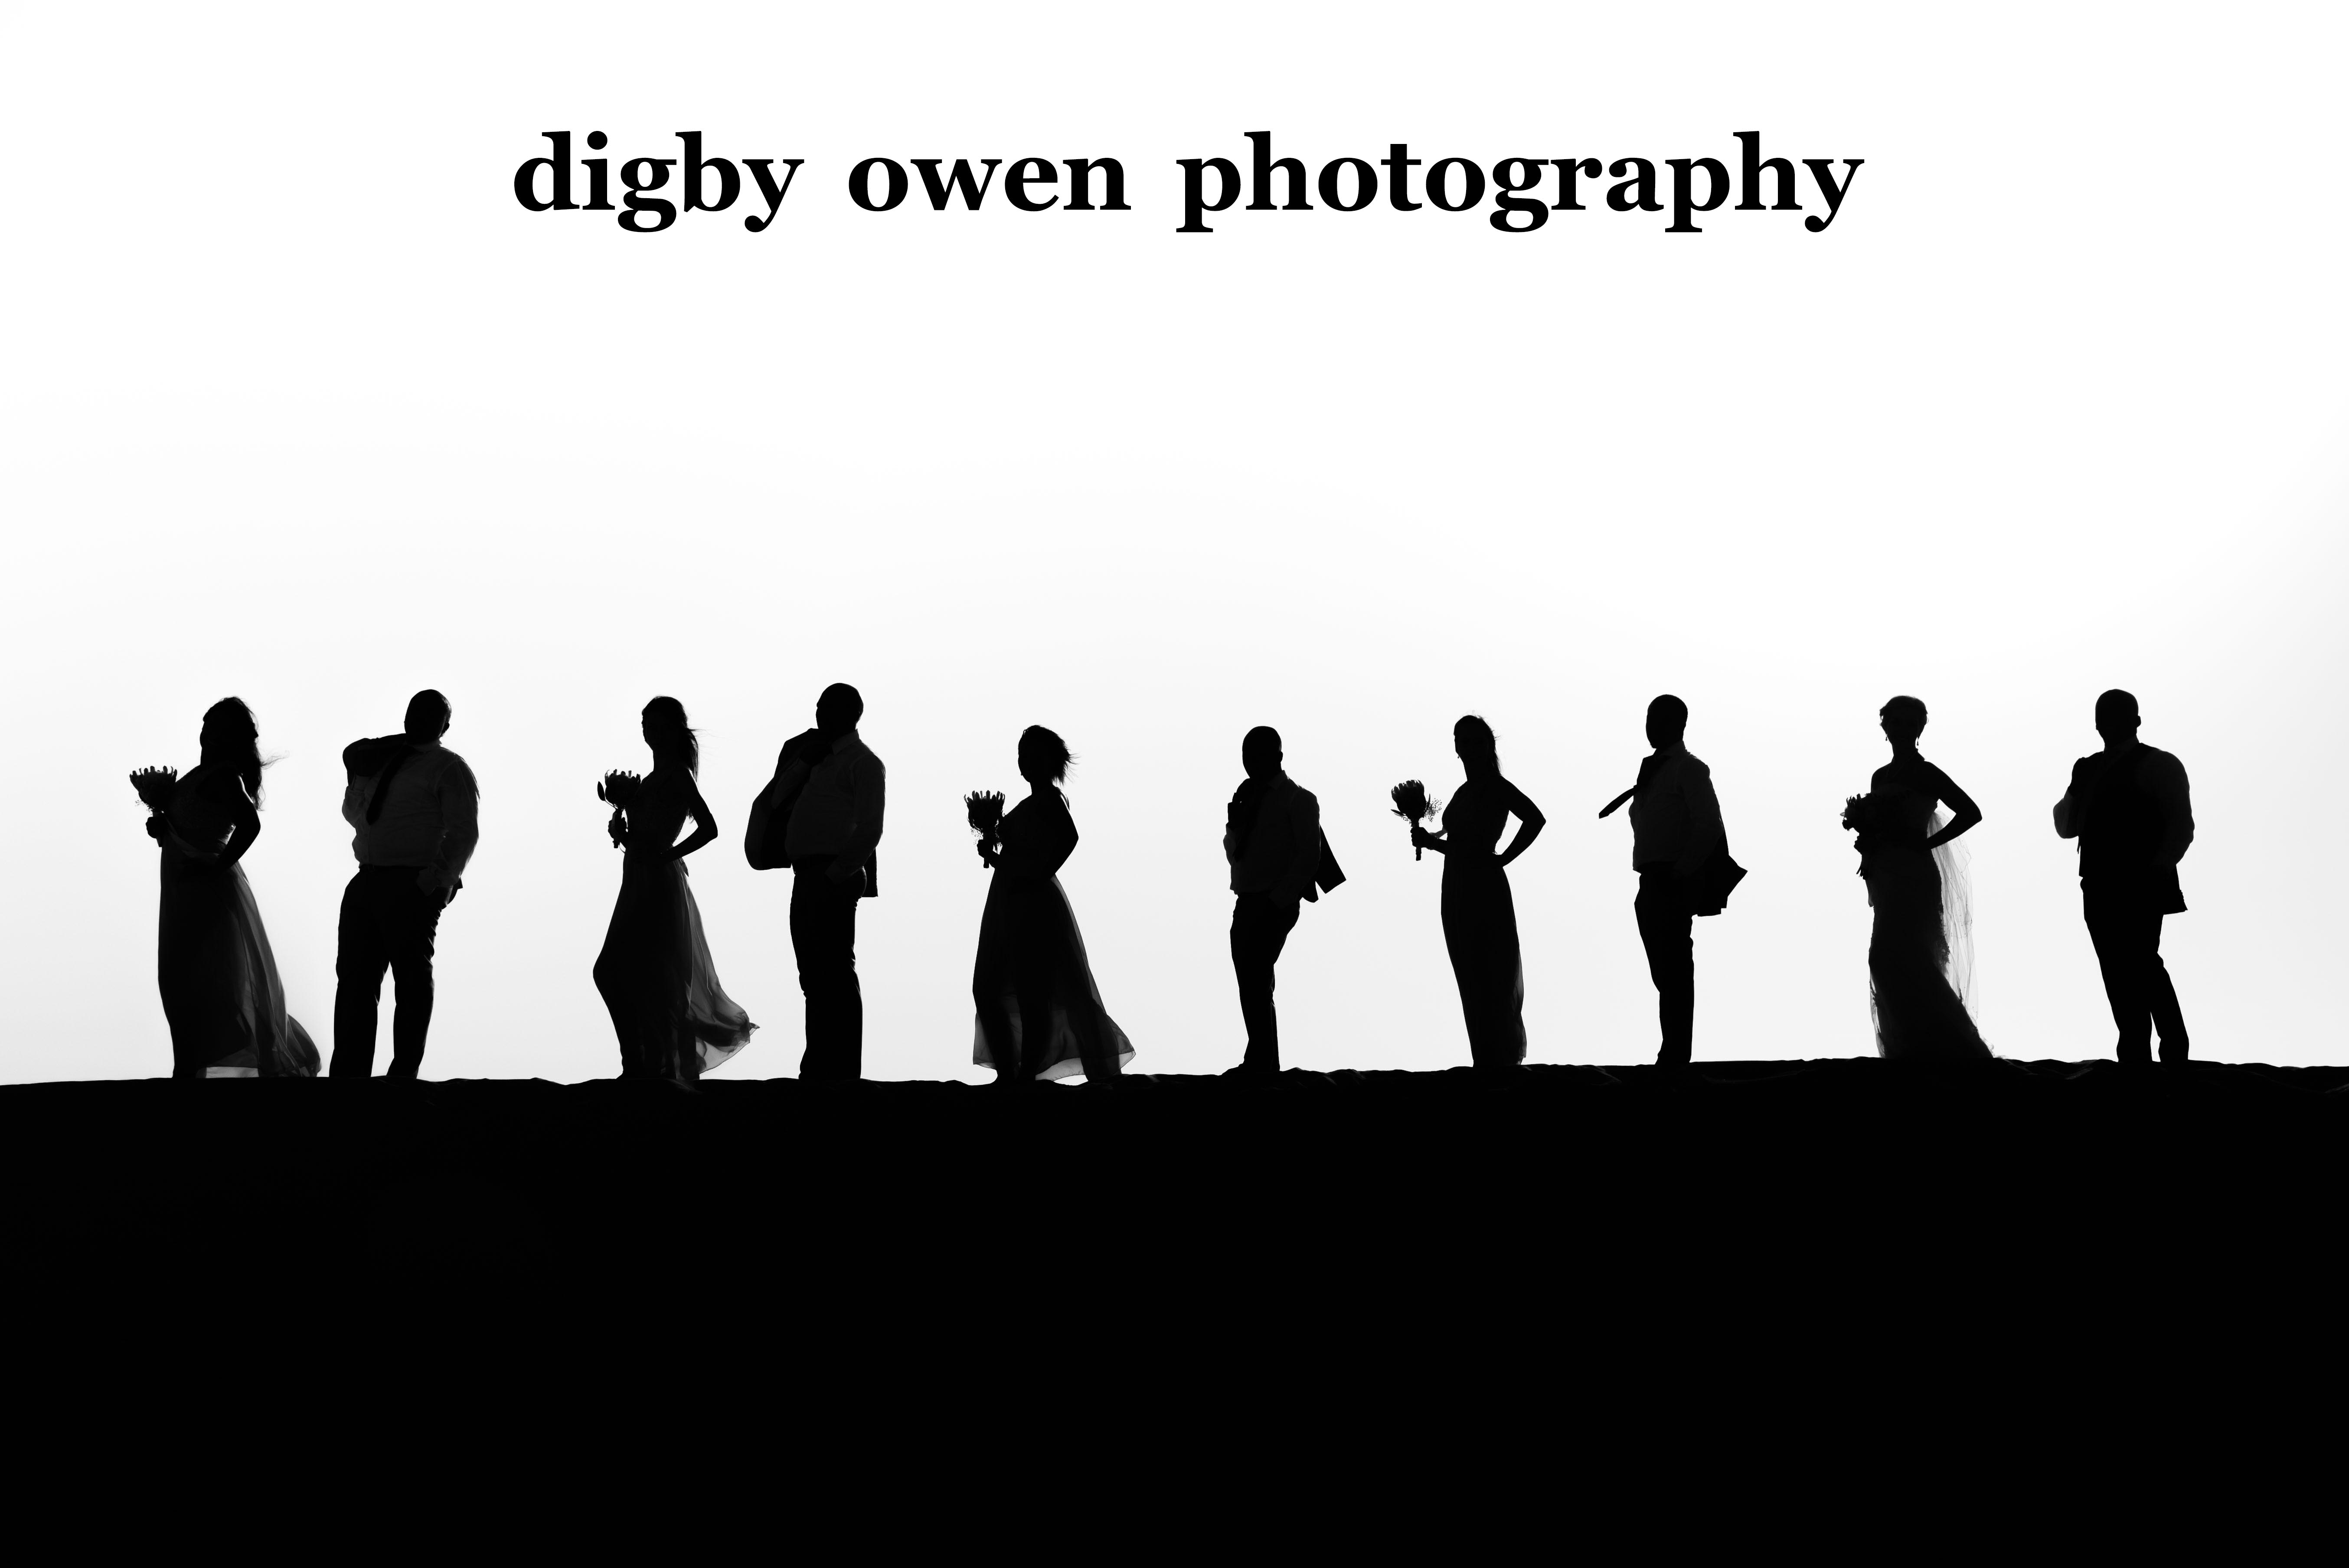 digby owen photography and dvd's